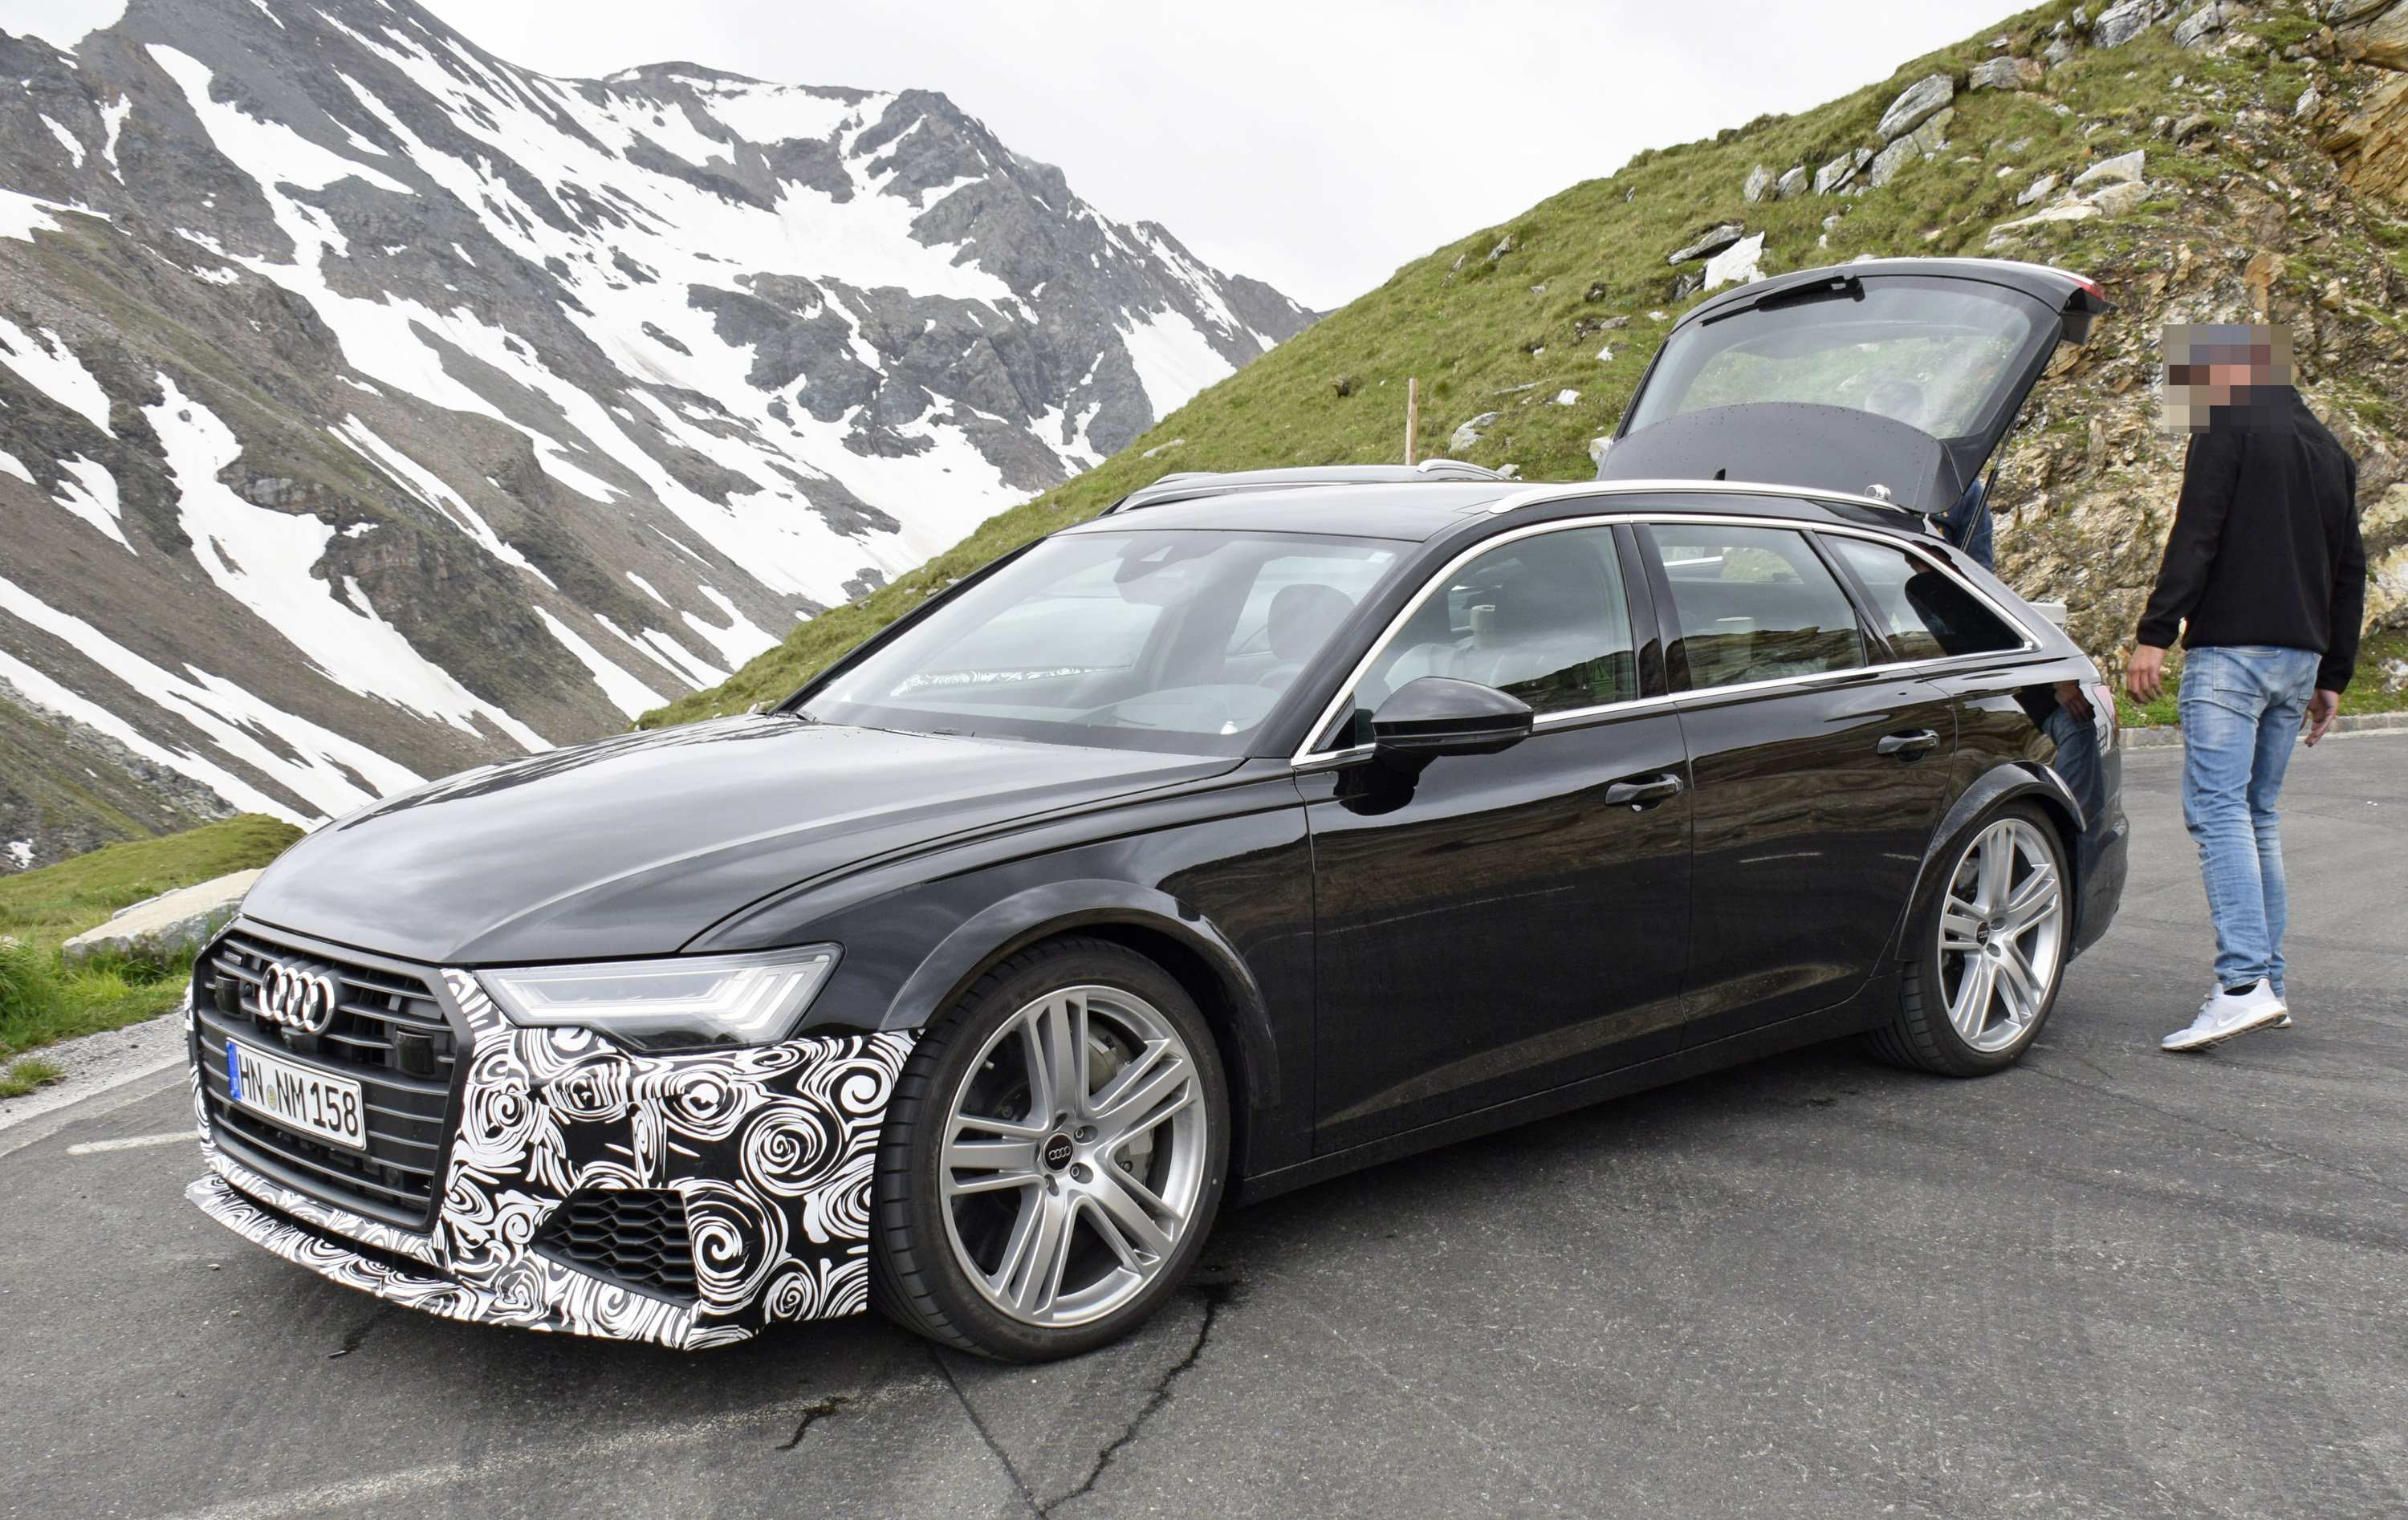 94 The 2019 Audi Rs6 Redesign with 2019 Audi Rs6